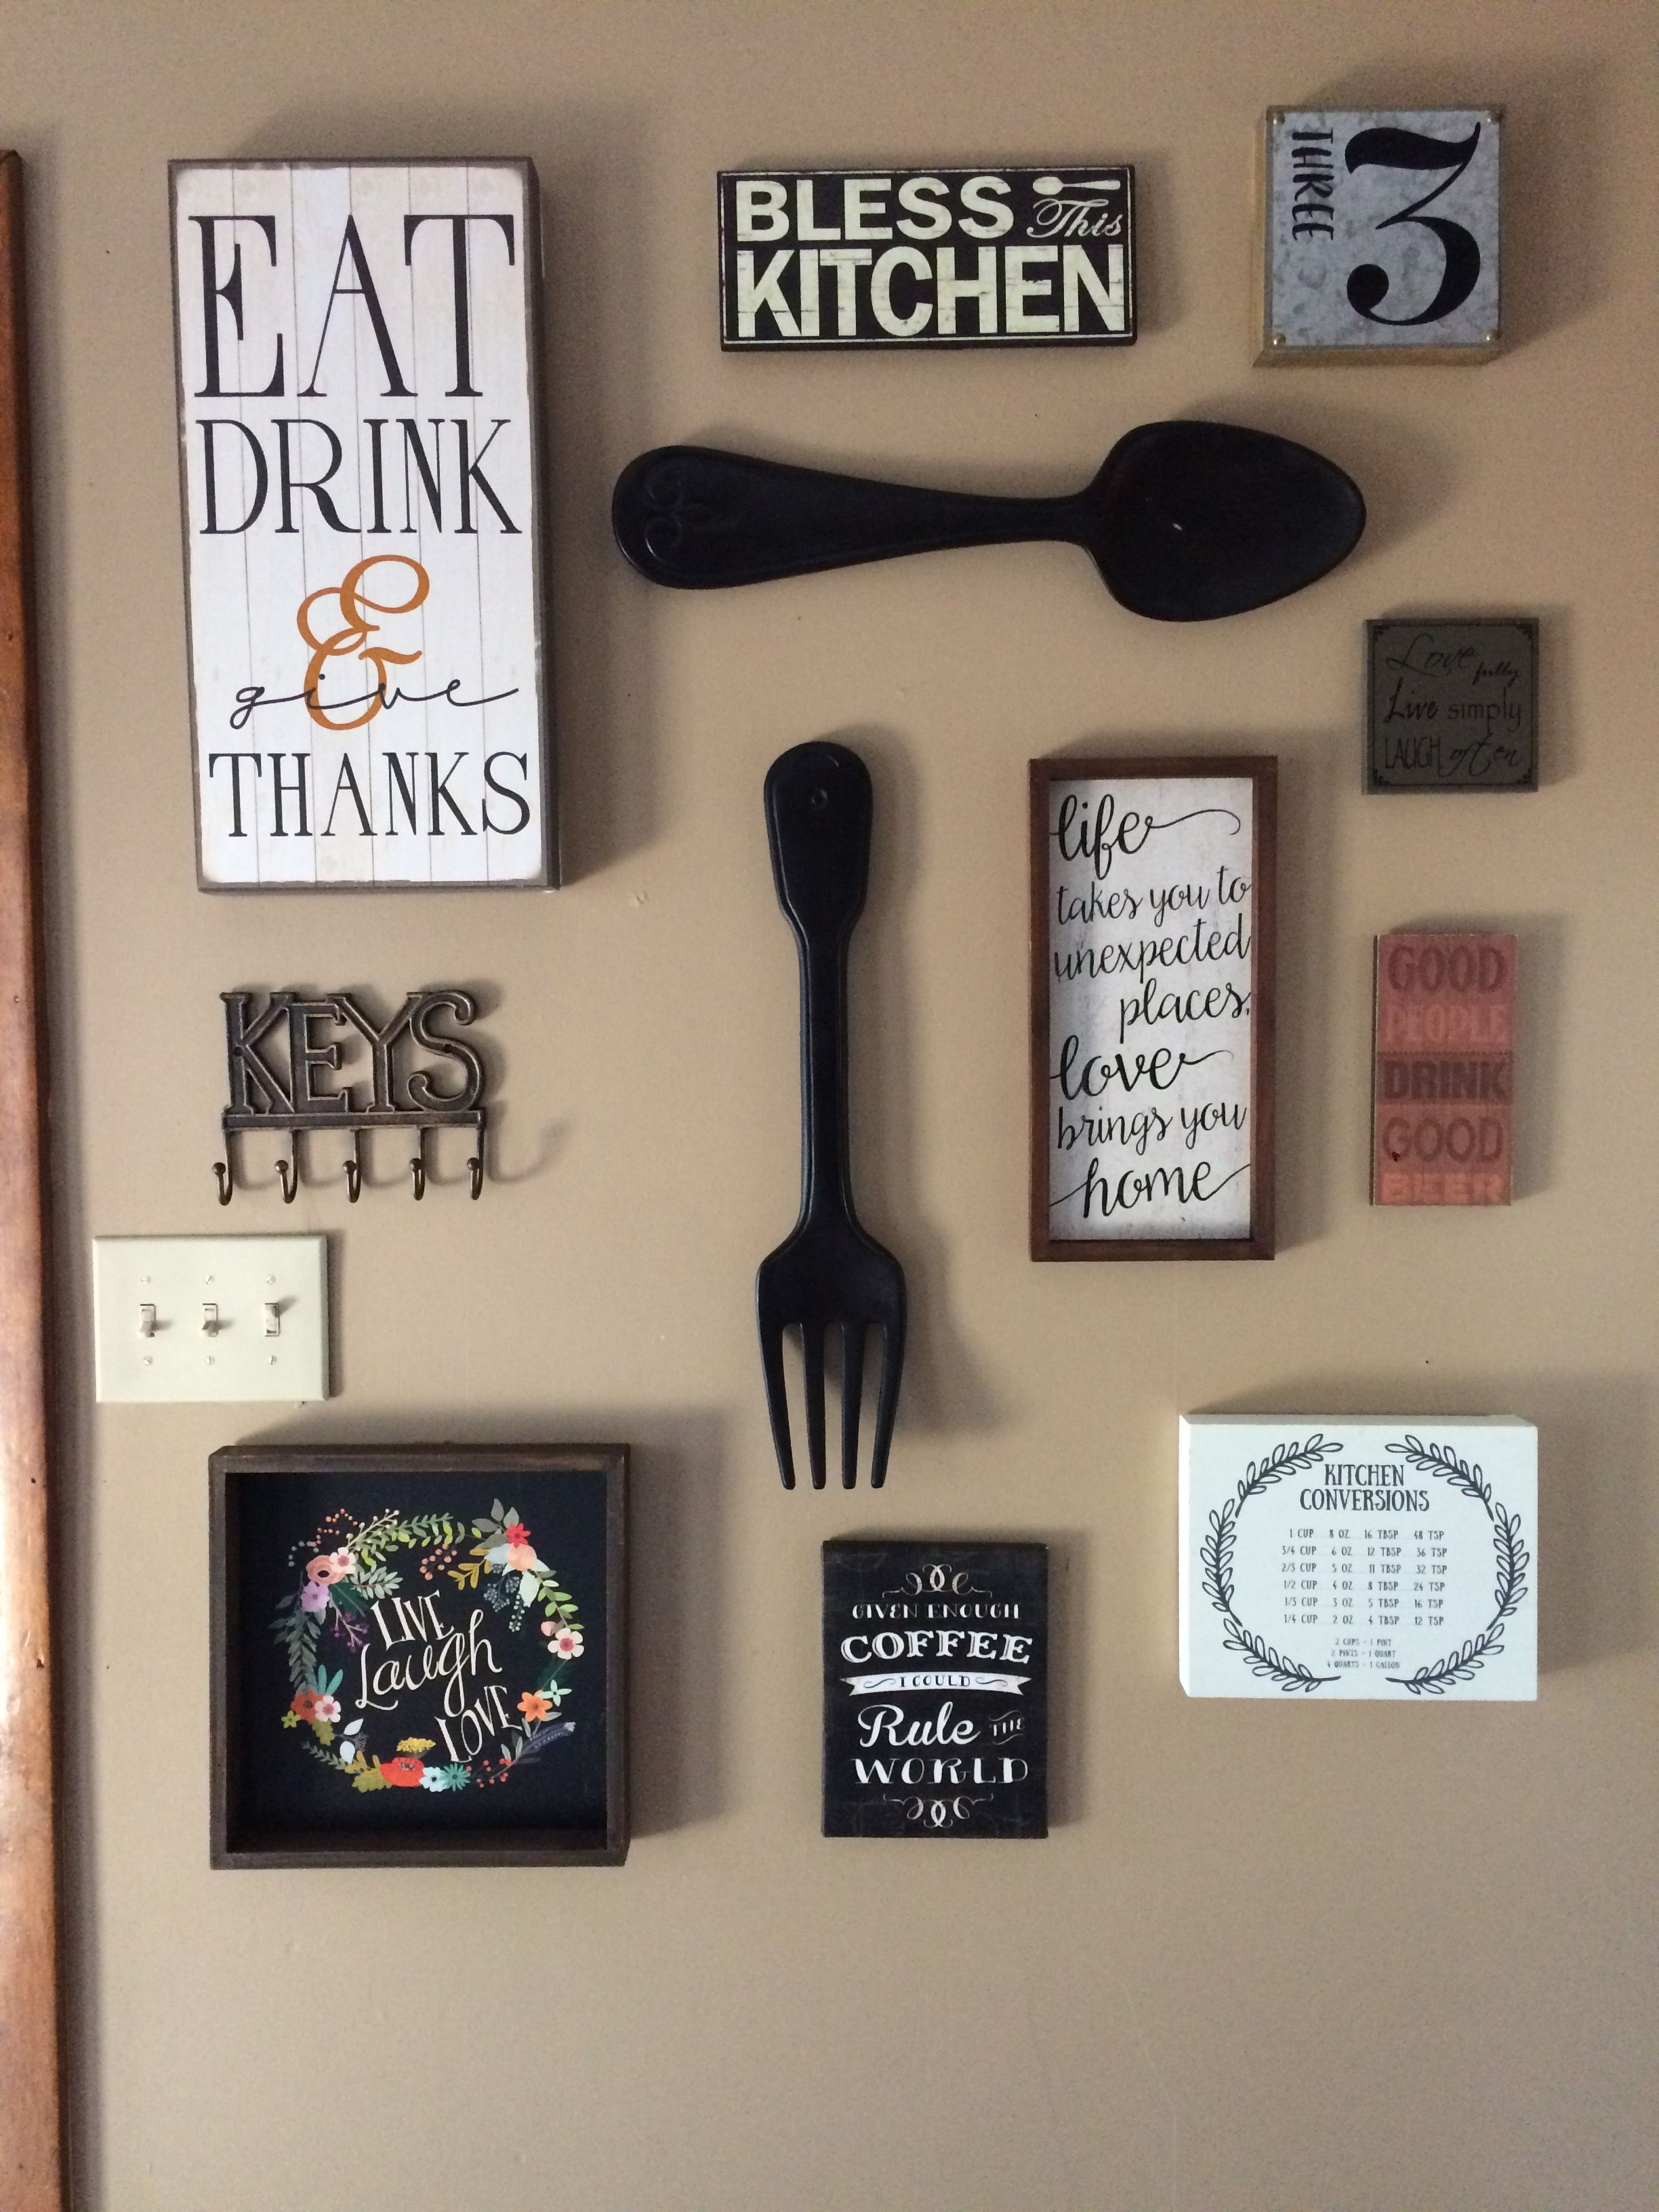 My kitchen gallery wall all decor from hobby lobby and ross completed the project in 1 hour it turned out amazing